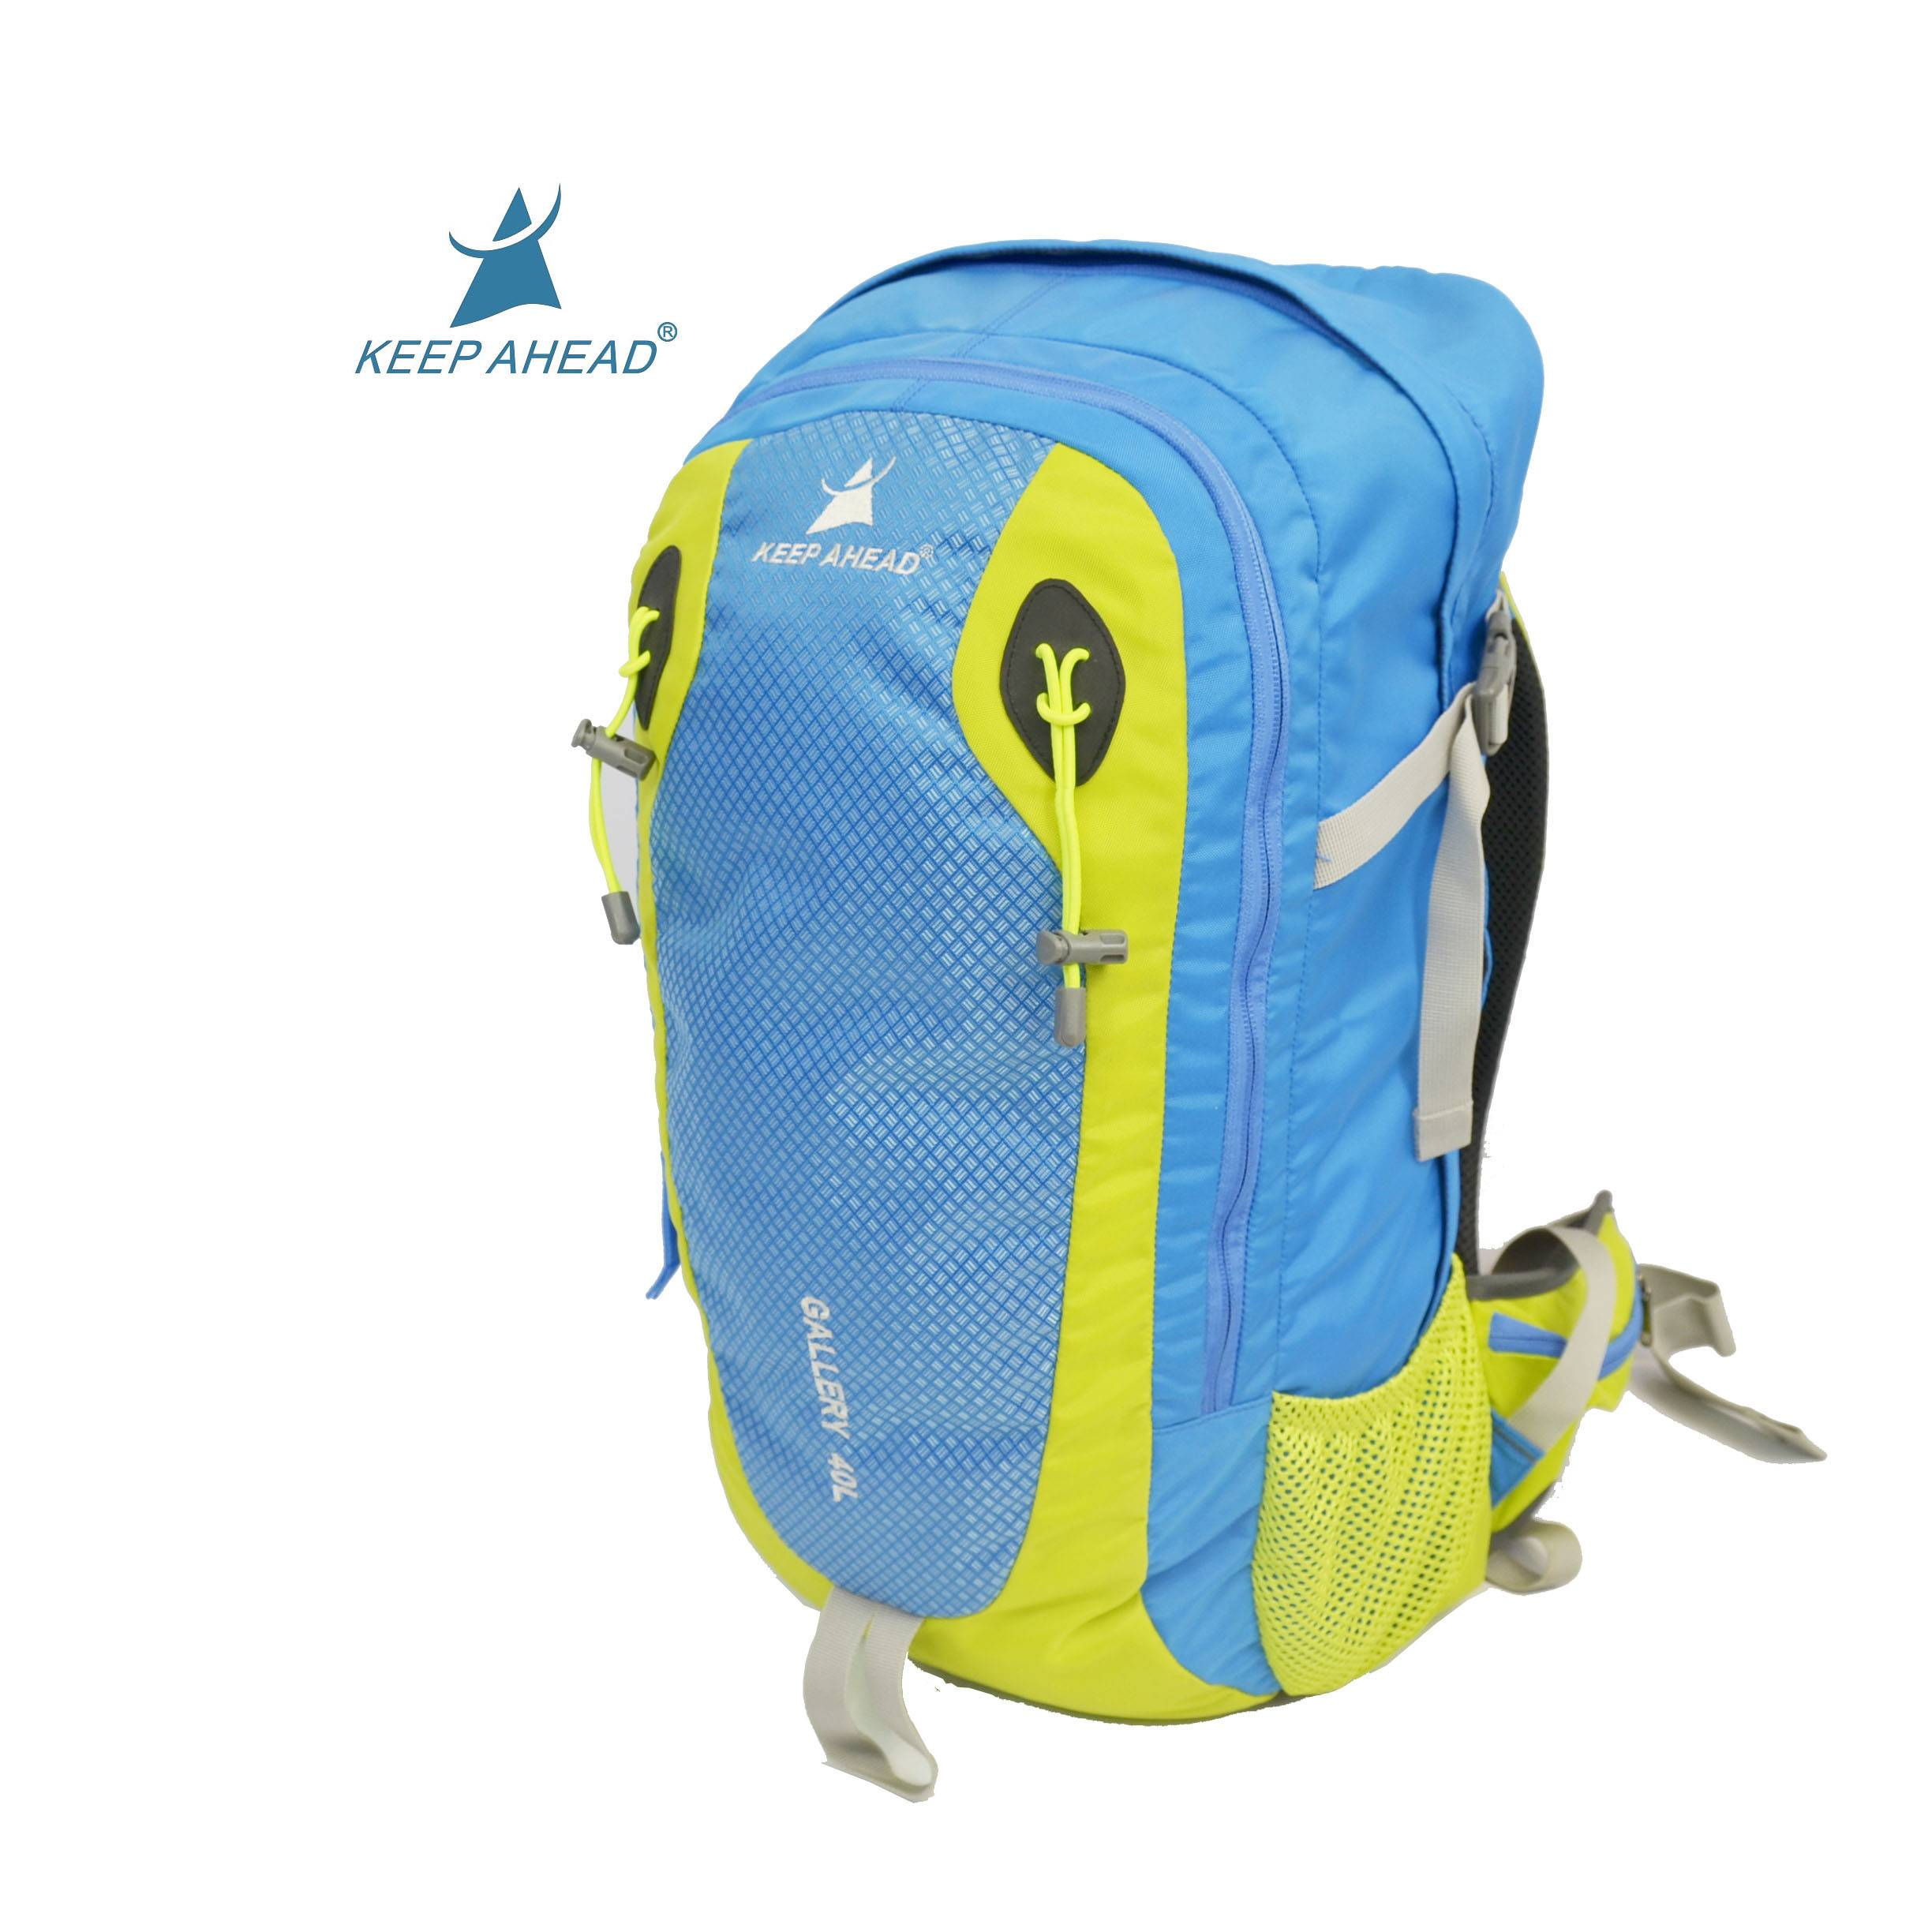 Light outdoor sport hiking backpack adventure mountain backpack day pack